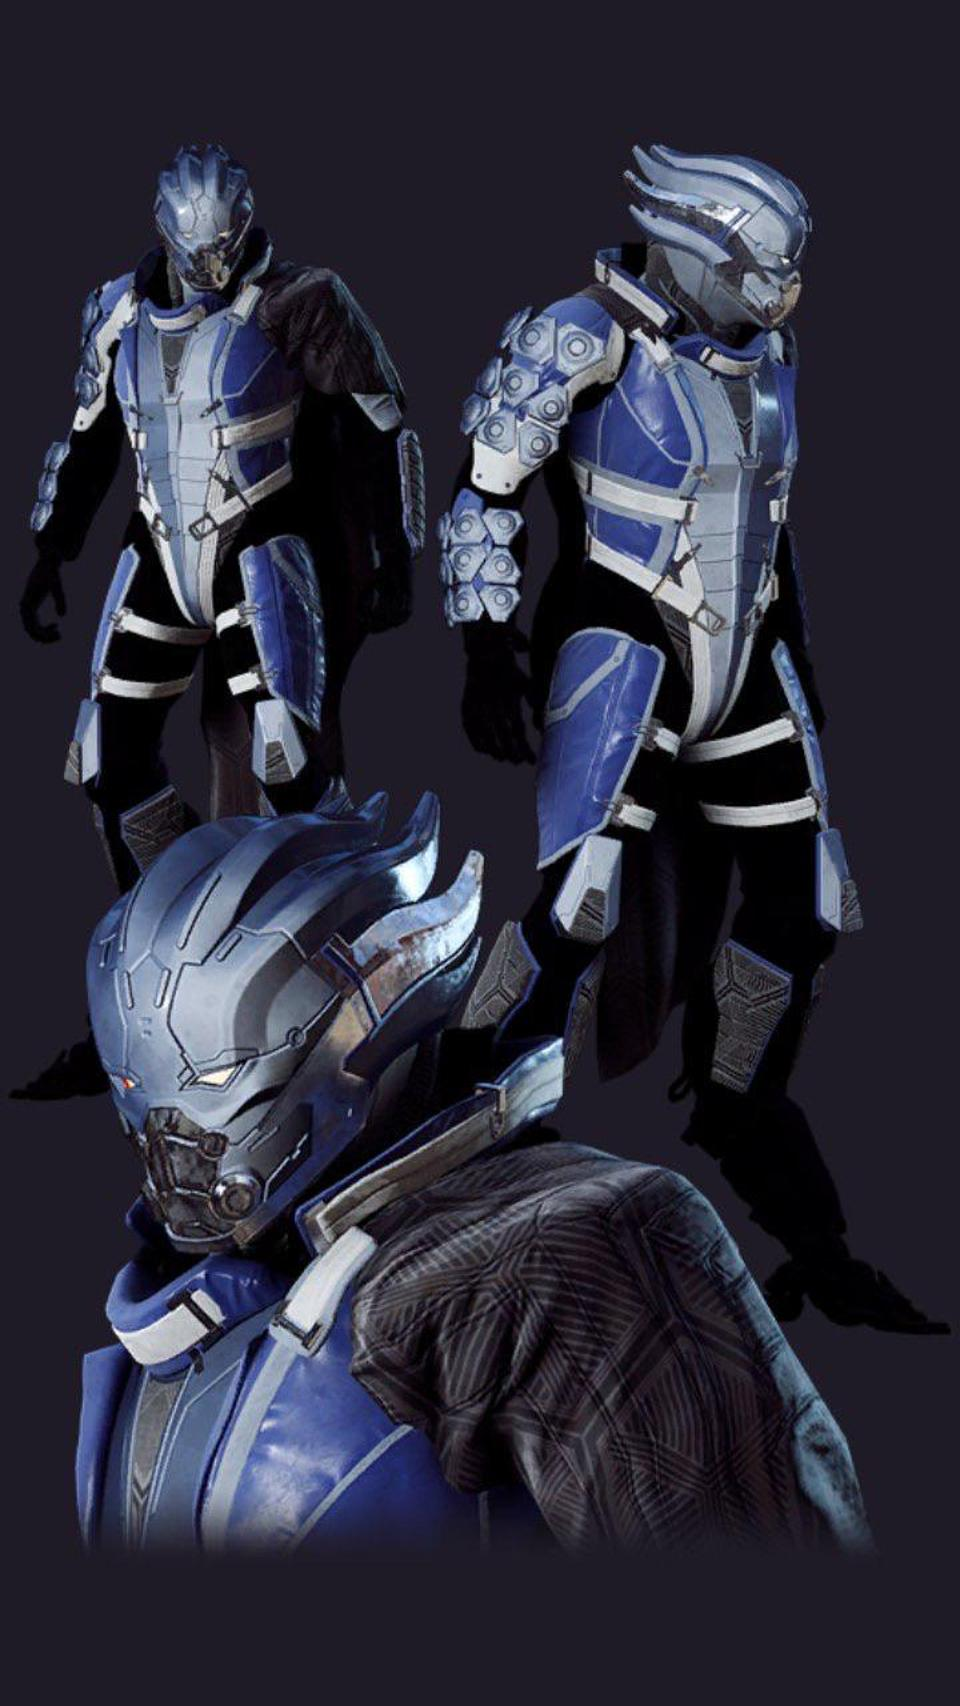 These Anthem Mass Effect Armor Sets Are So Good They Make Me Sad Ranger armor (no da required). these anthem mass effect armor sets